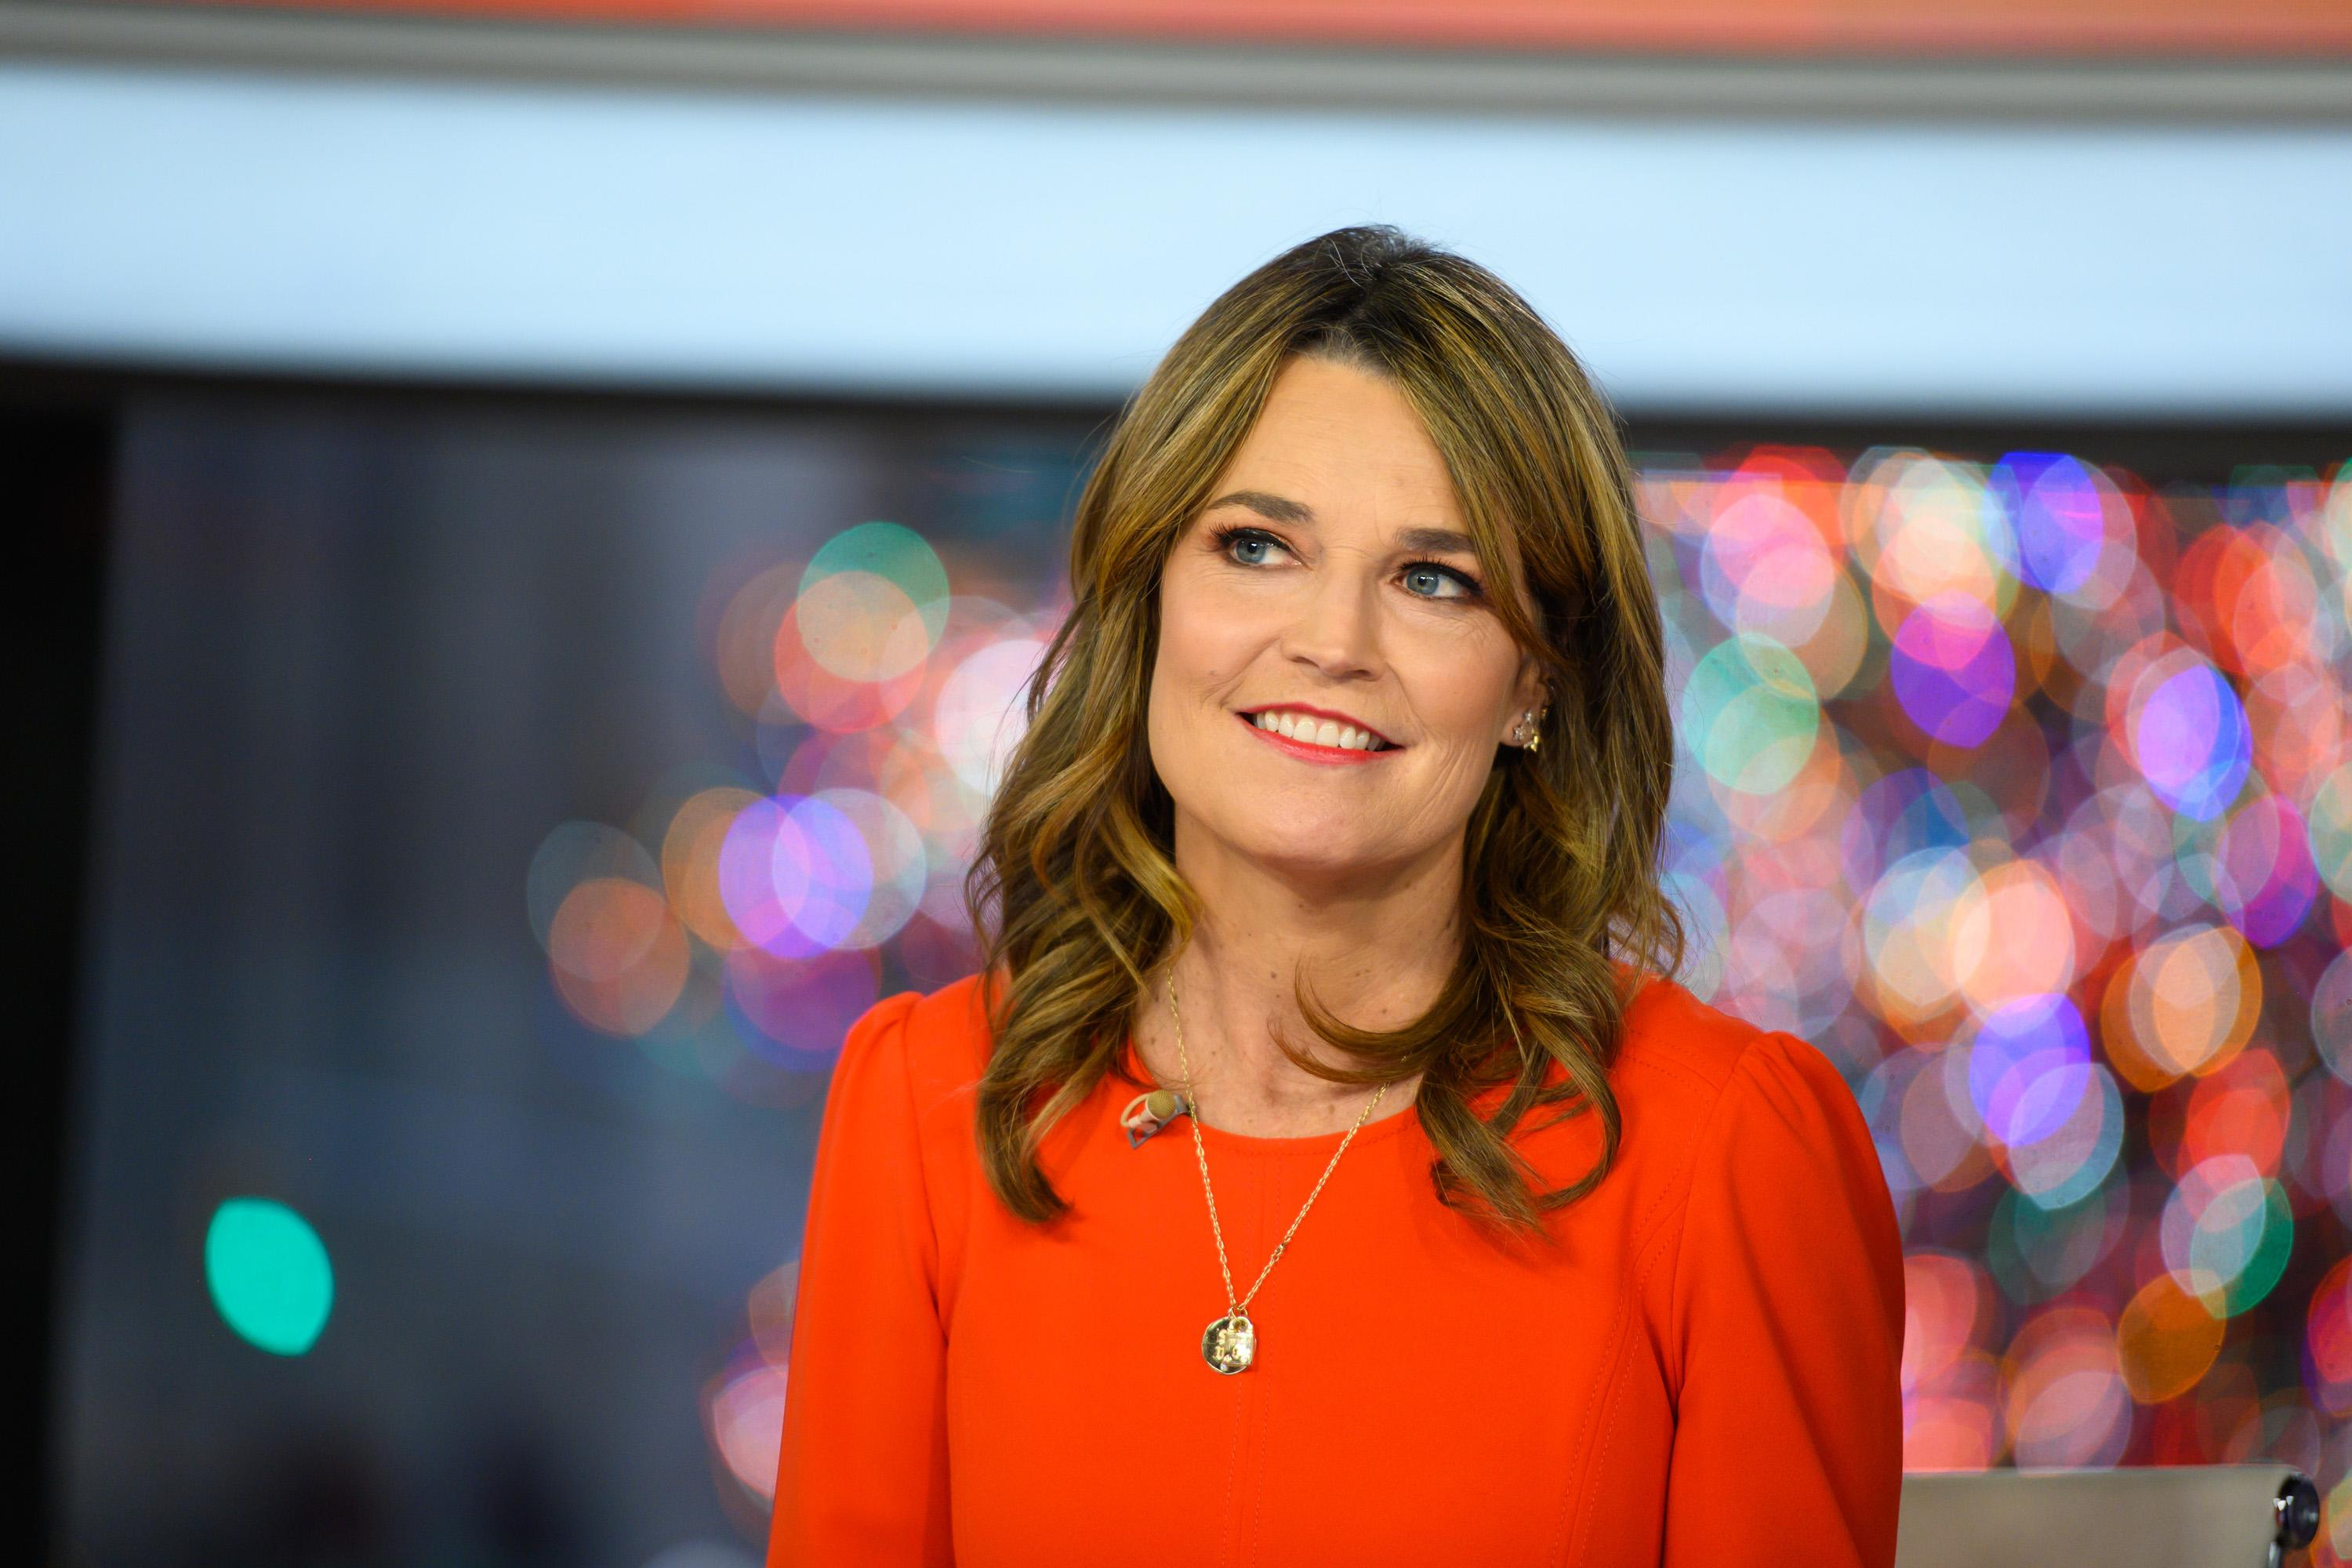 Savannah Guthrie reflects on 'crazy uncle' comment in President Trump interview: 'I'm shocked at myself'